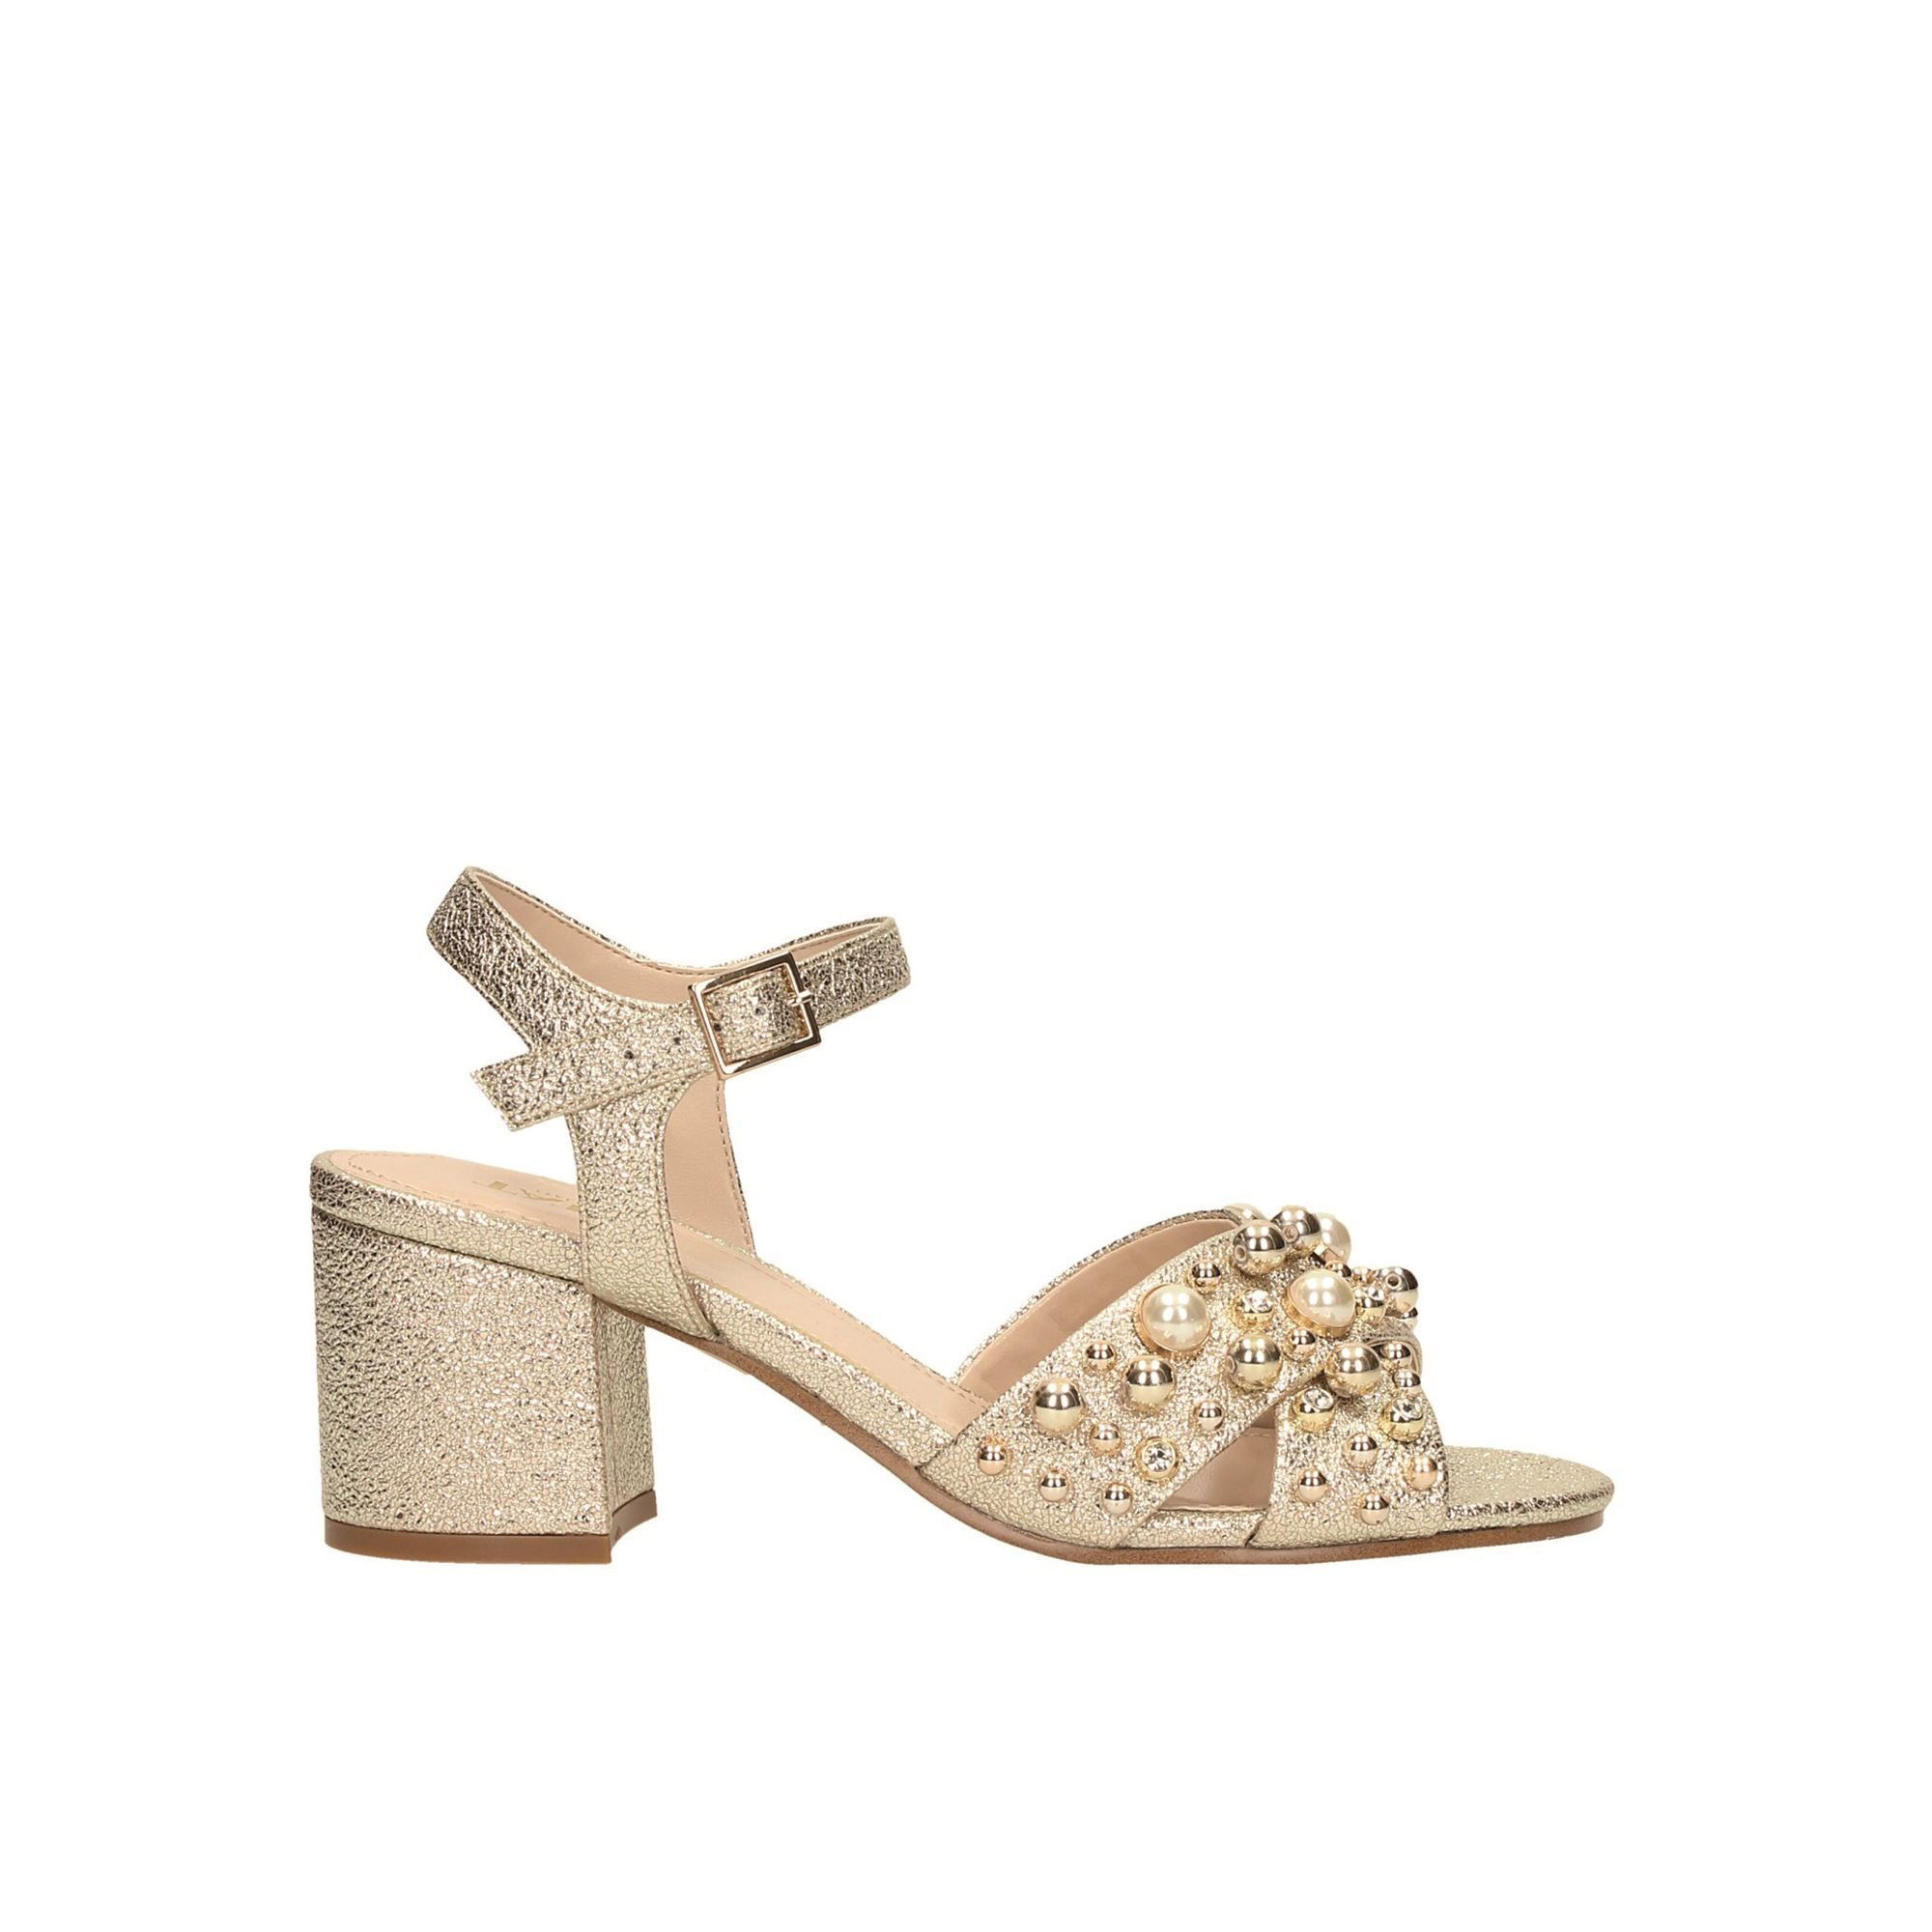 Tata Italia Shoes Woman Sandali Gold LS601868-16